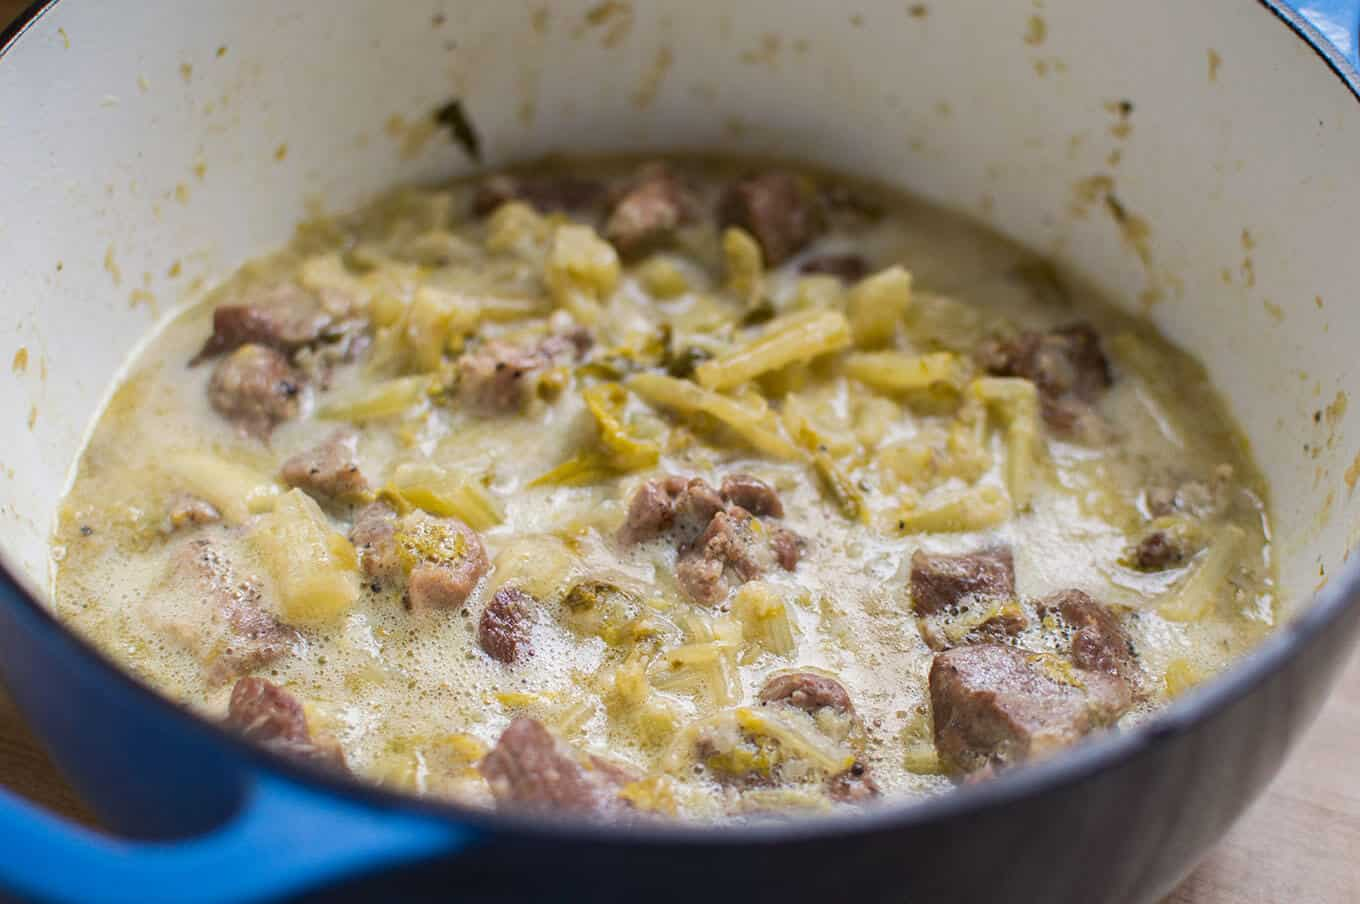 Hoirino me Selino Avgolemono (Pork and Celery Stew with Egg-Lemon Sauce) | omgfood.com